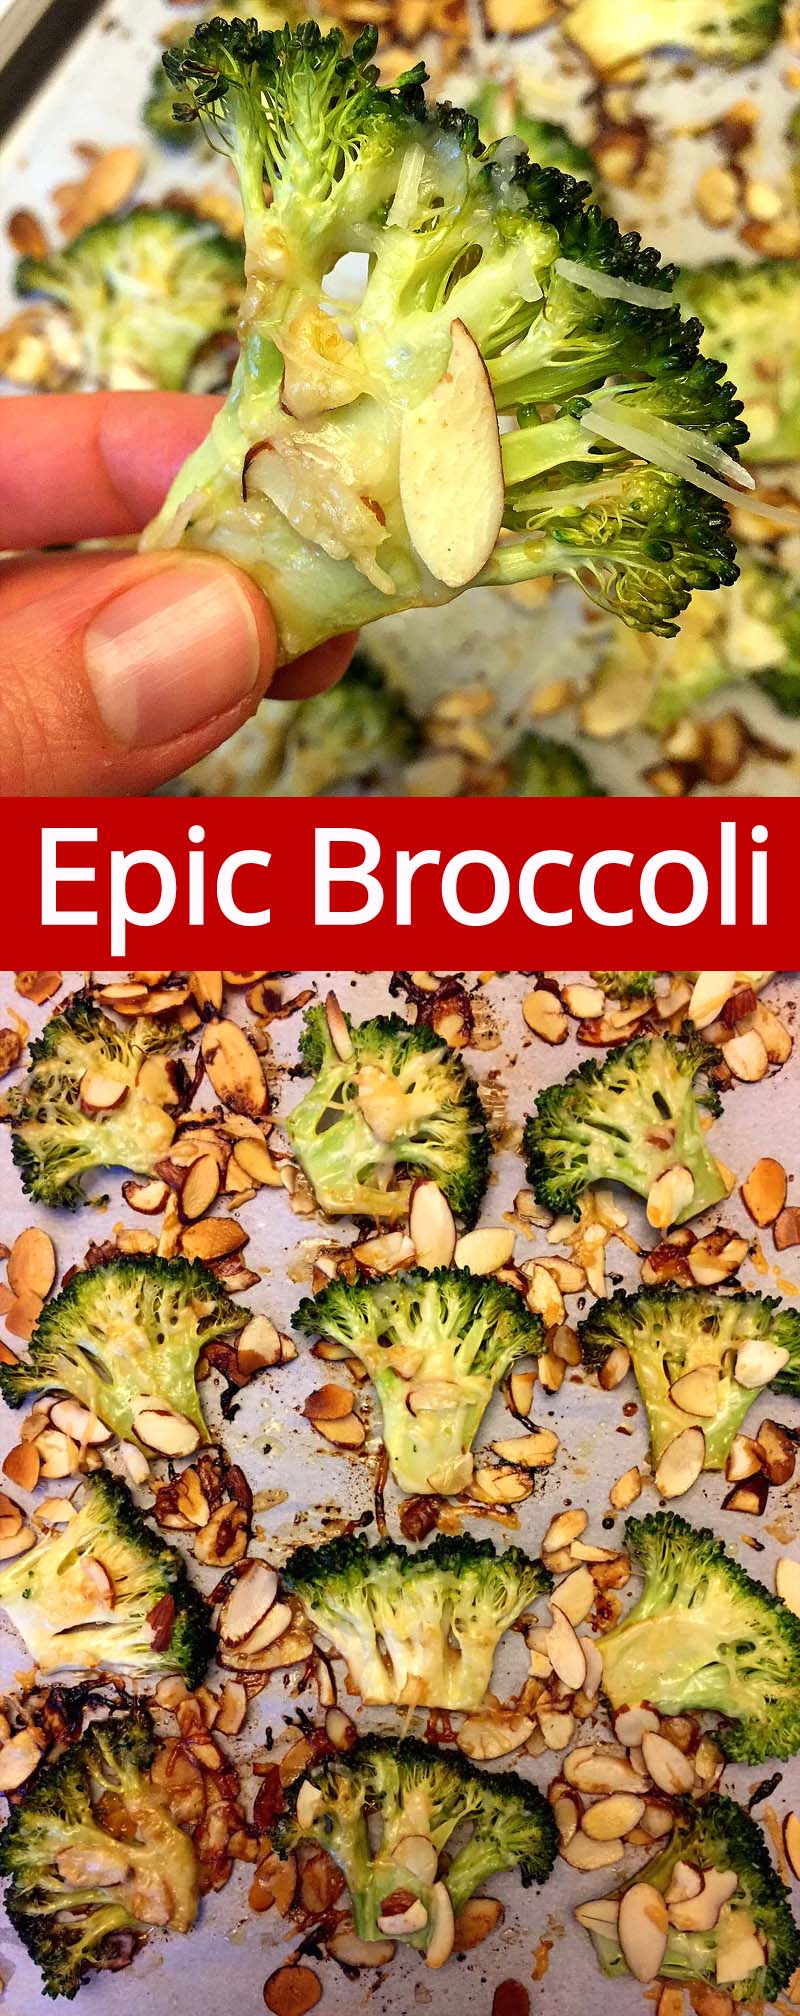 This is the best broccoli recipe ever! Caramelized balsamic roasted broccoli with Parmesan cheese and almonds tastes amazing! Once you try this epic broccoli, you'll never want to make it any other way!